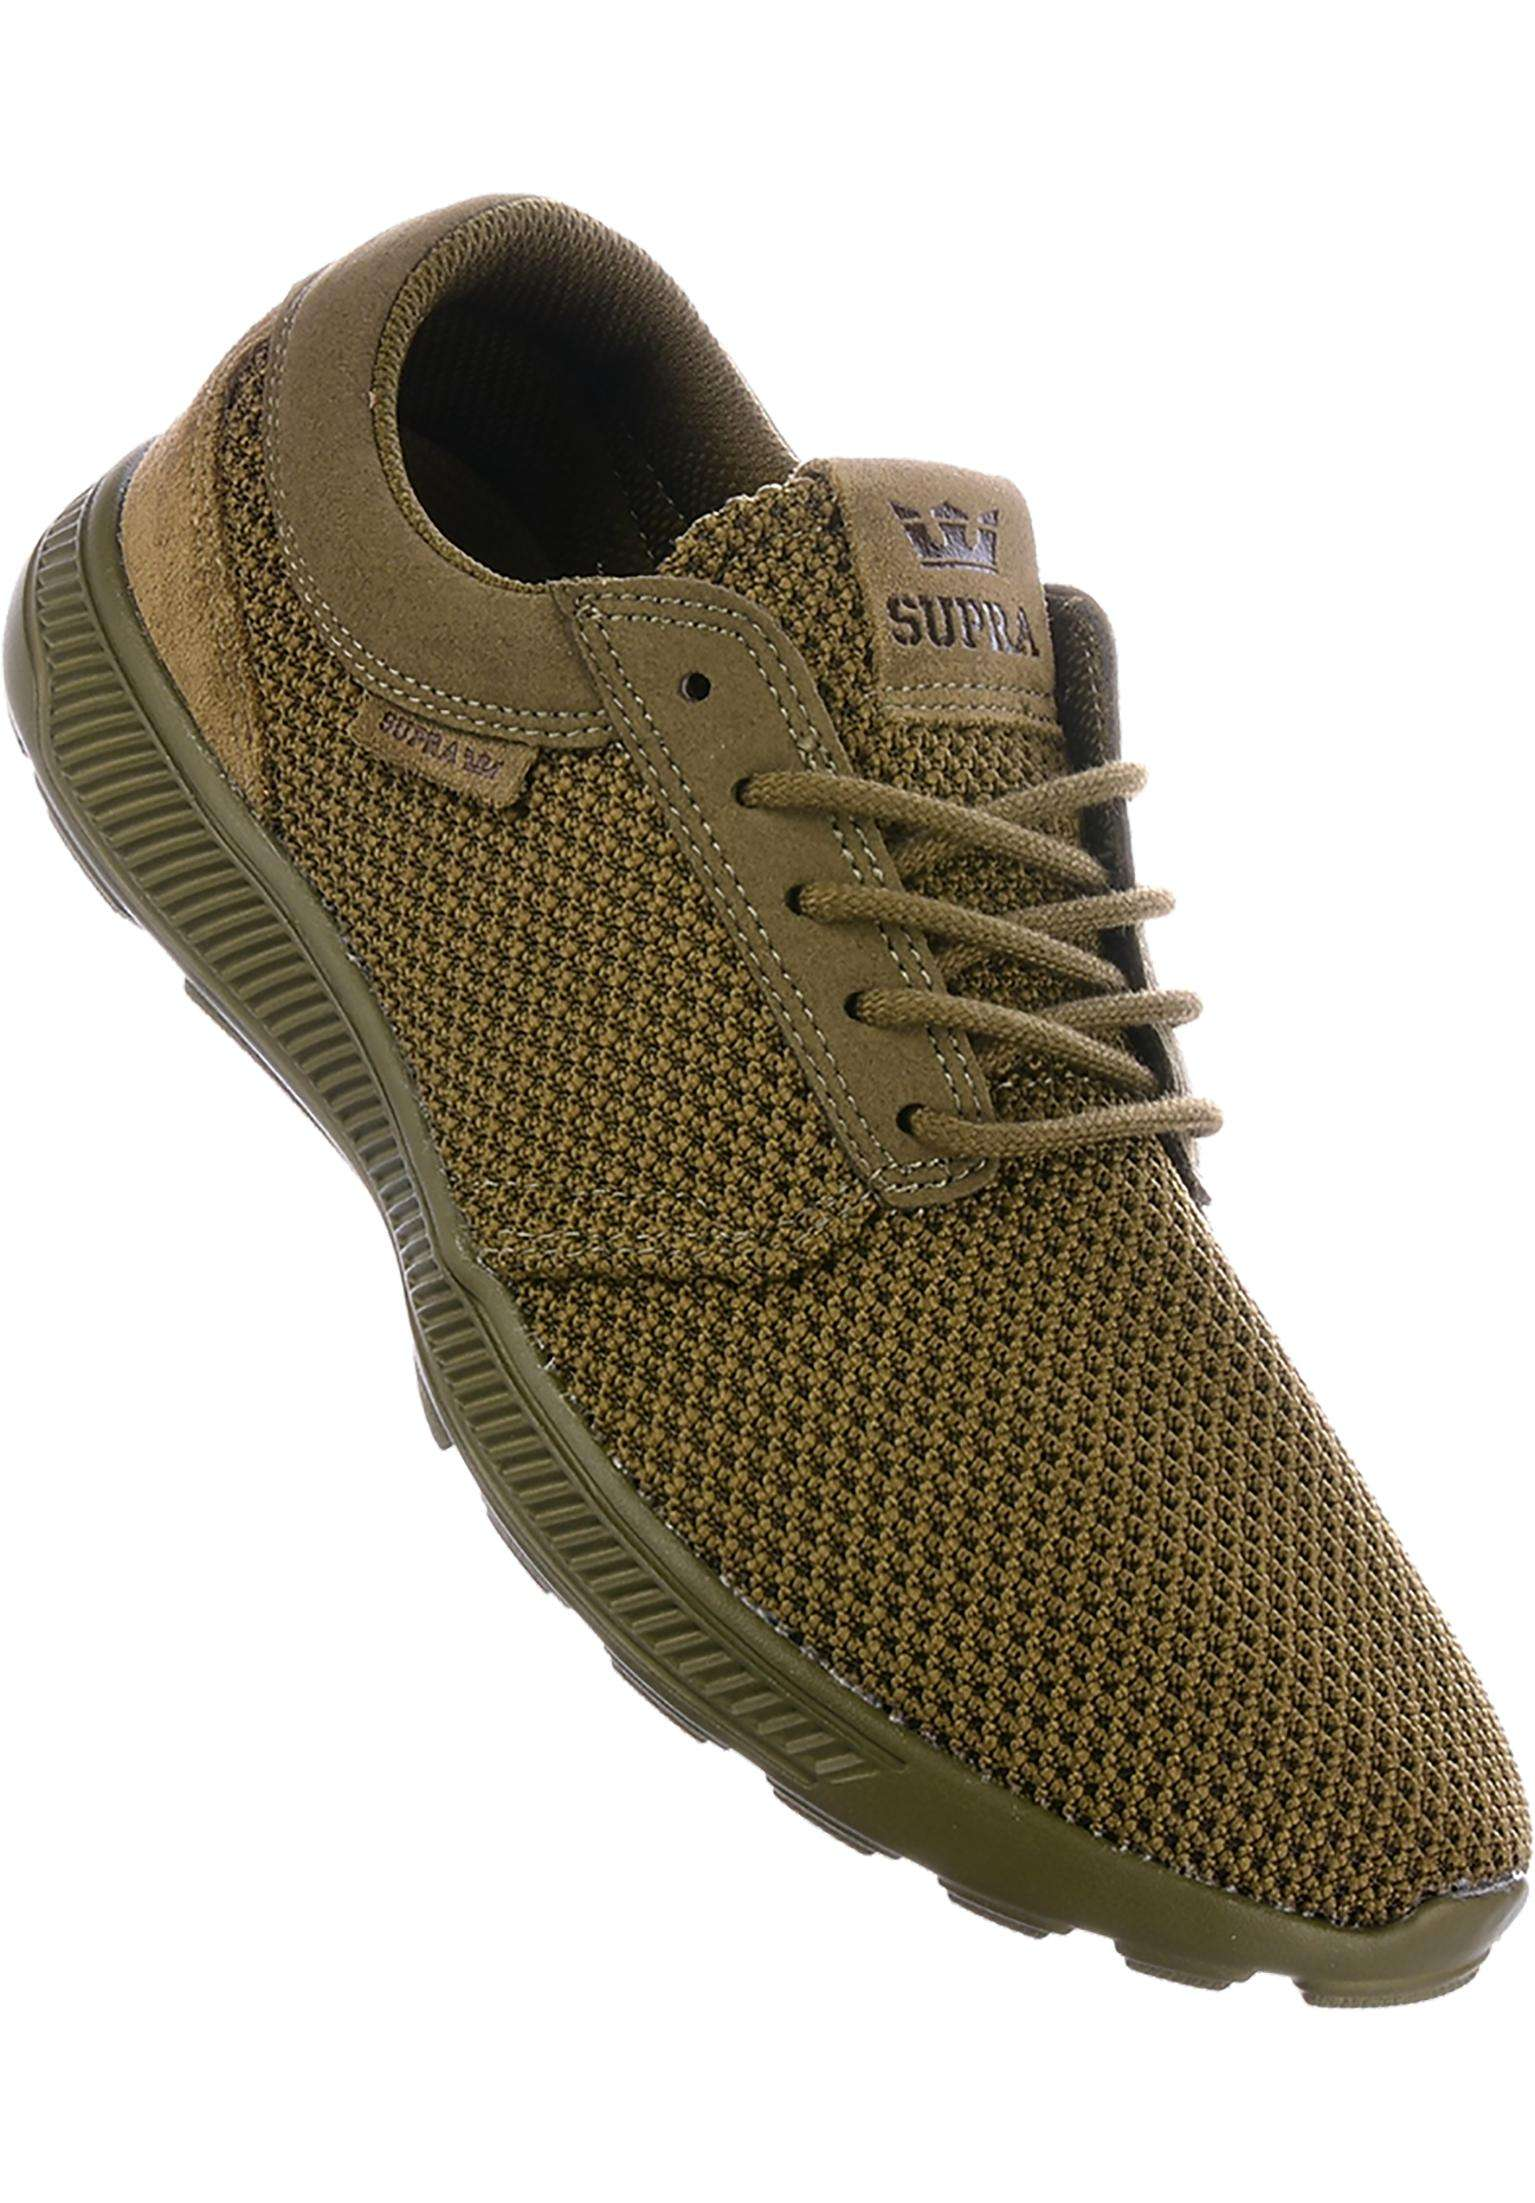 8d0e08d79514 Hammer Run Supra All Shoes in olive for Men